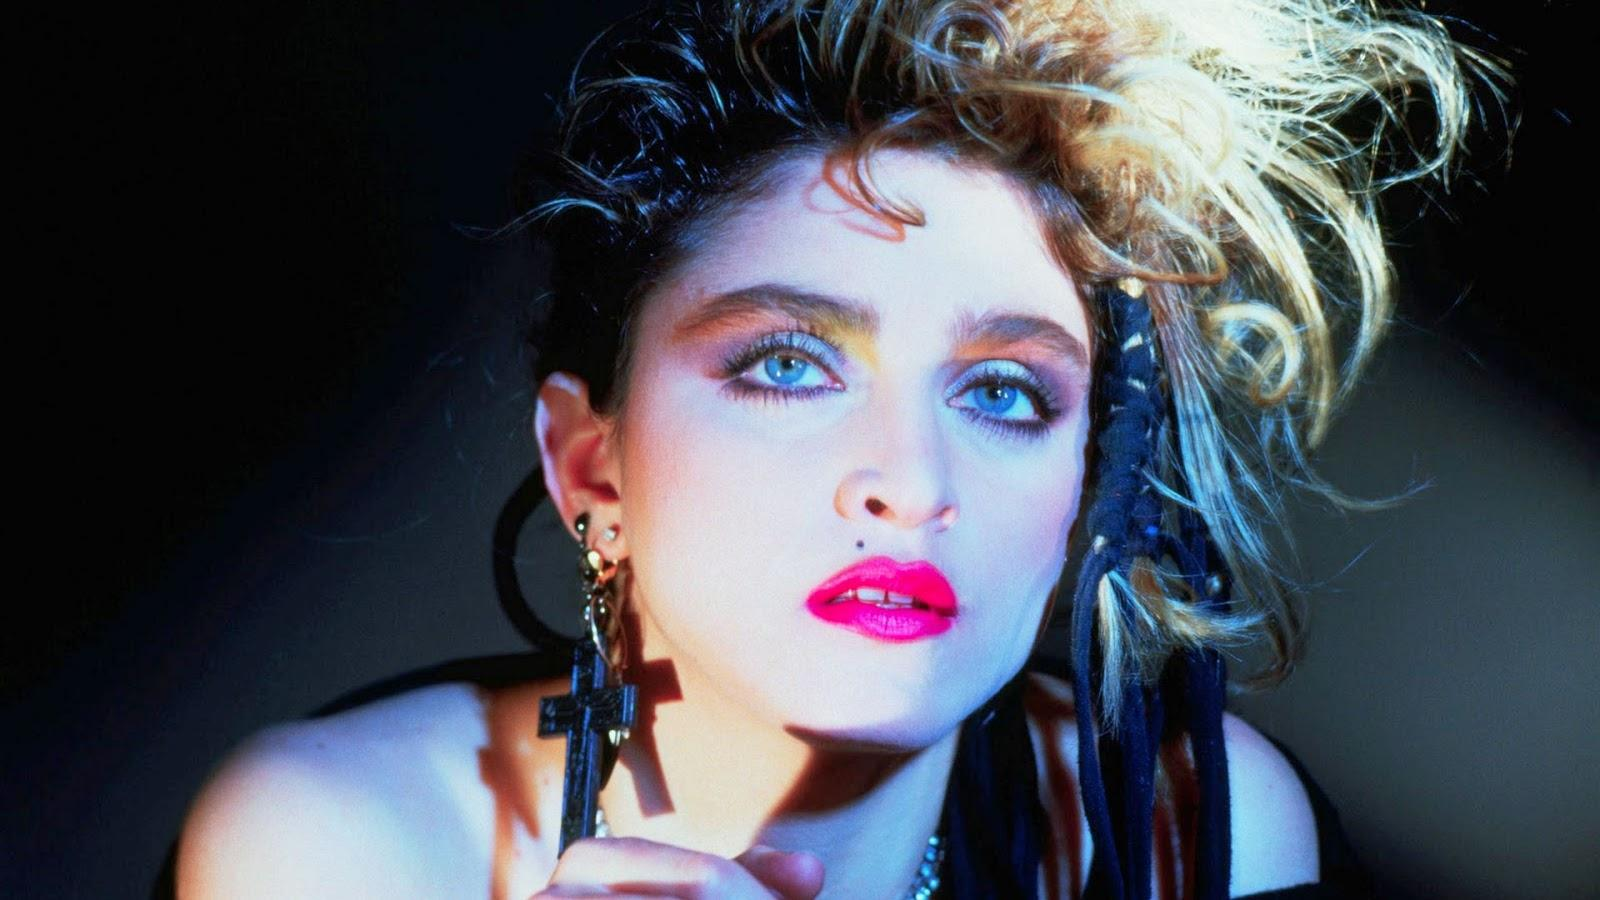 madonna's best beautiful picture, madonna's picture, best madonna